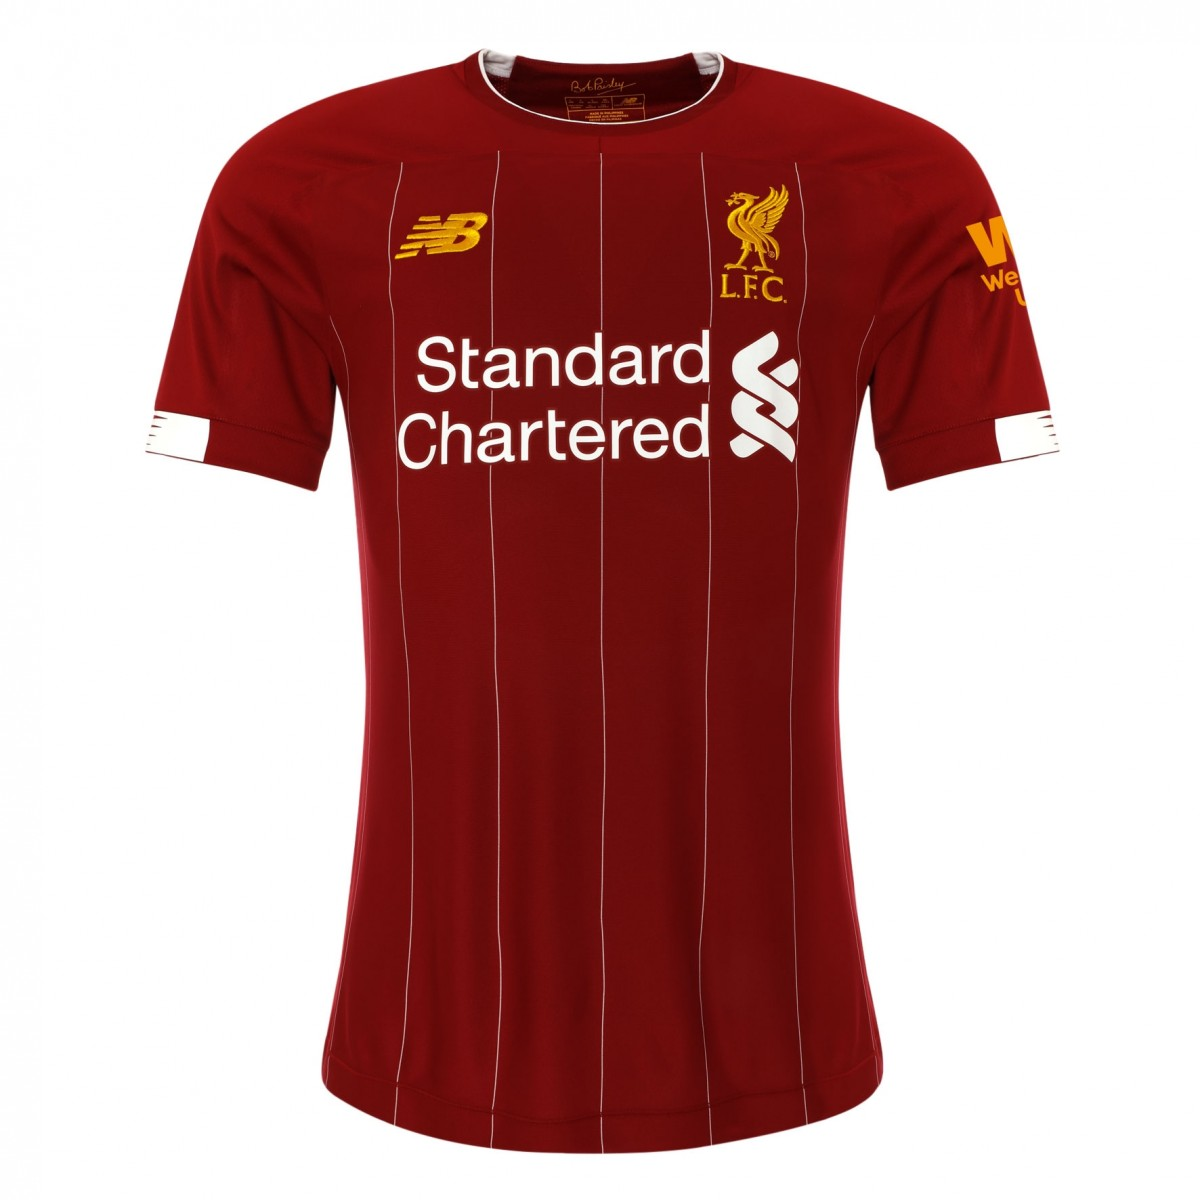 New Balance Liverpool Home Jersey - Red/White/Gold